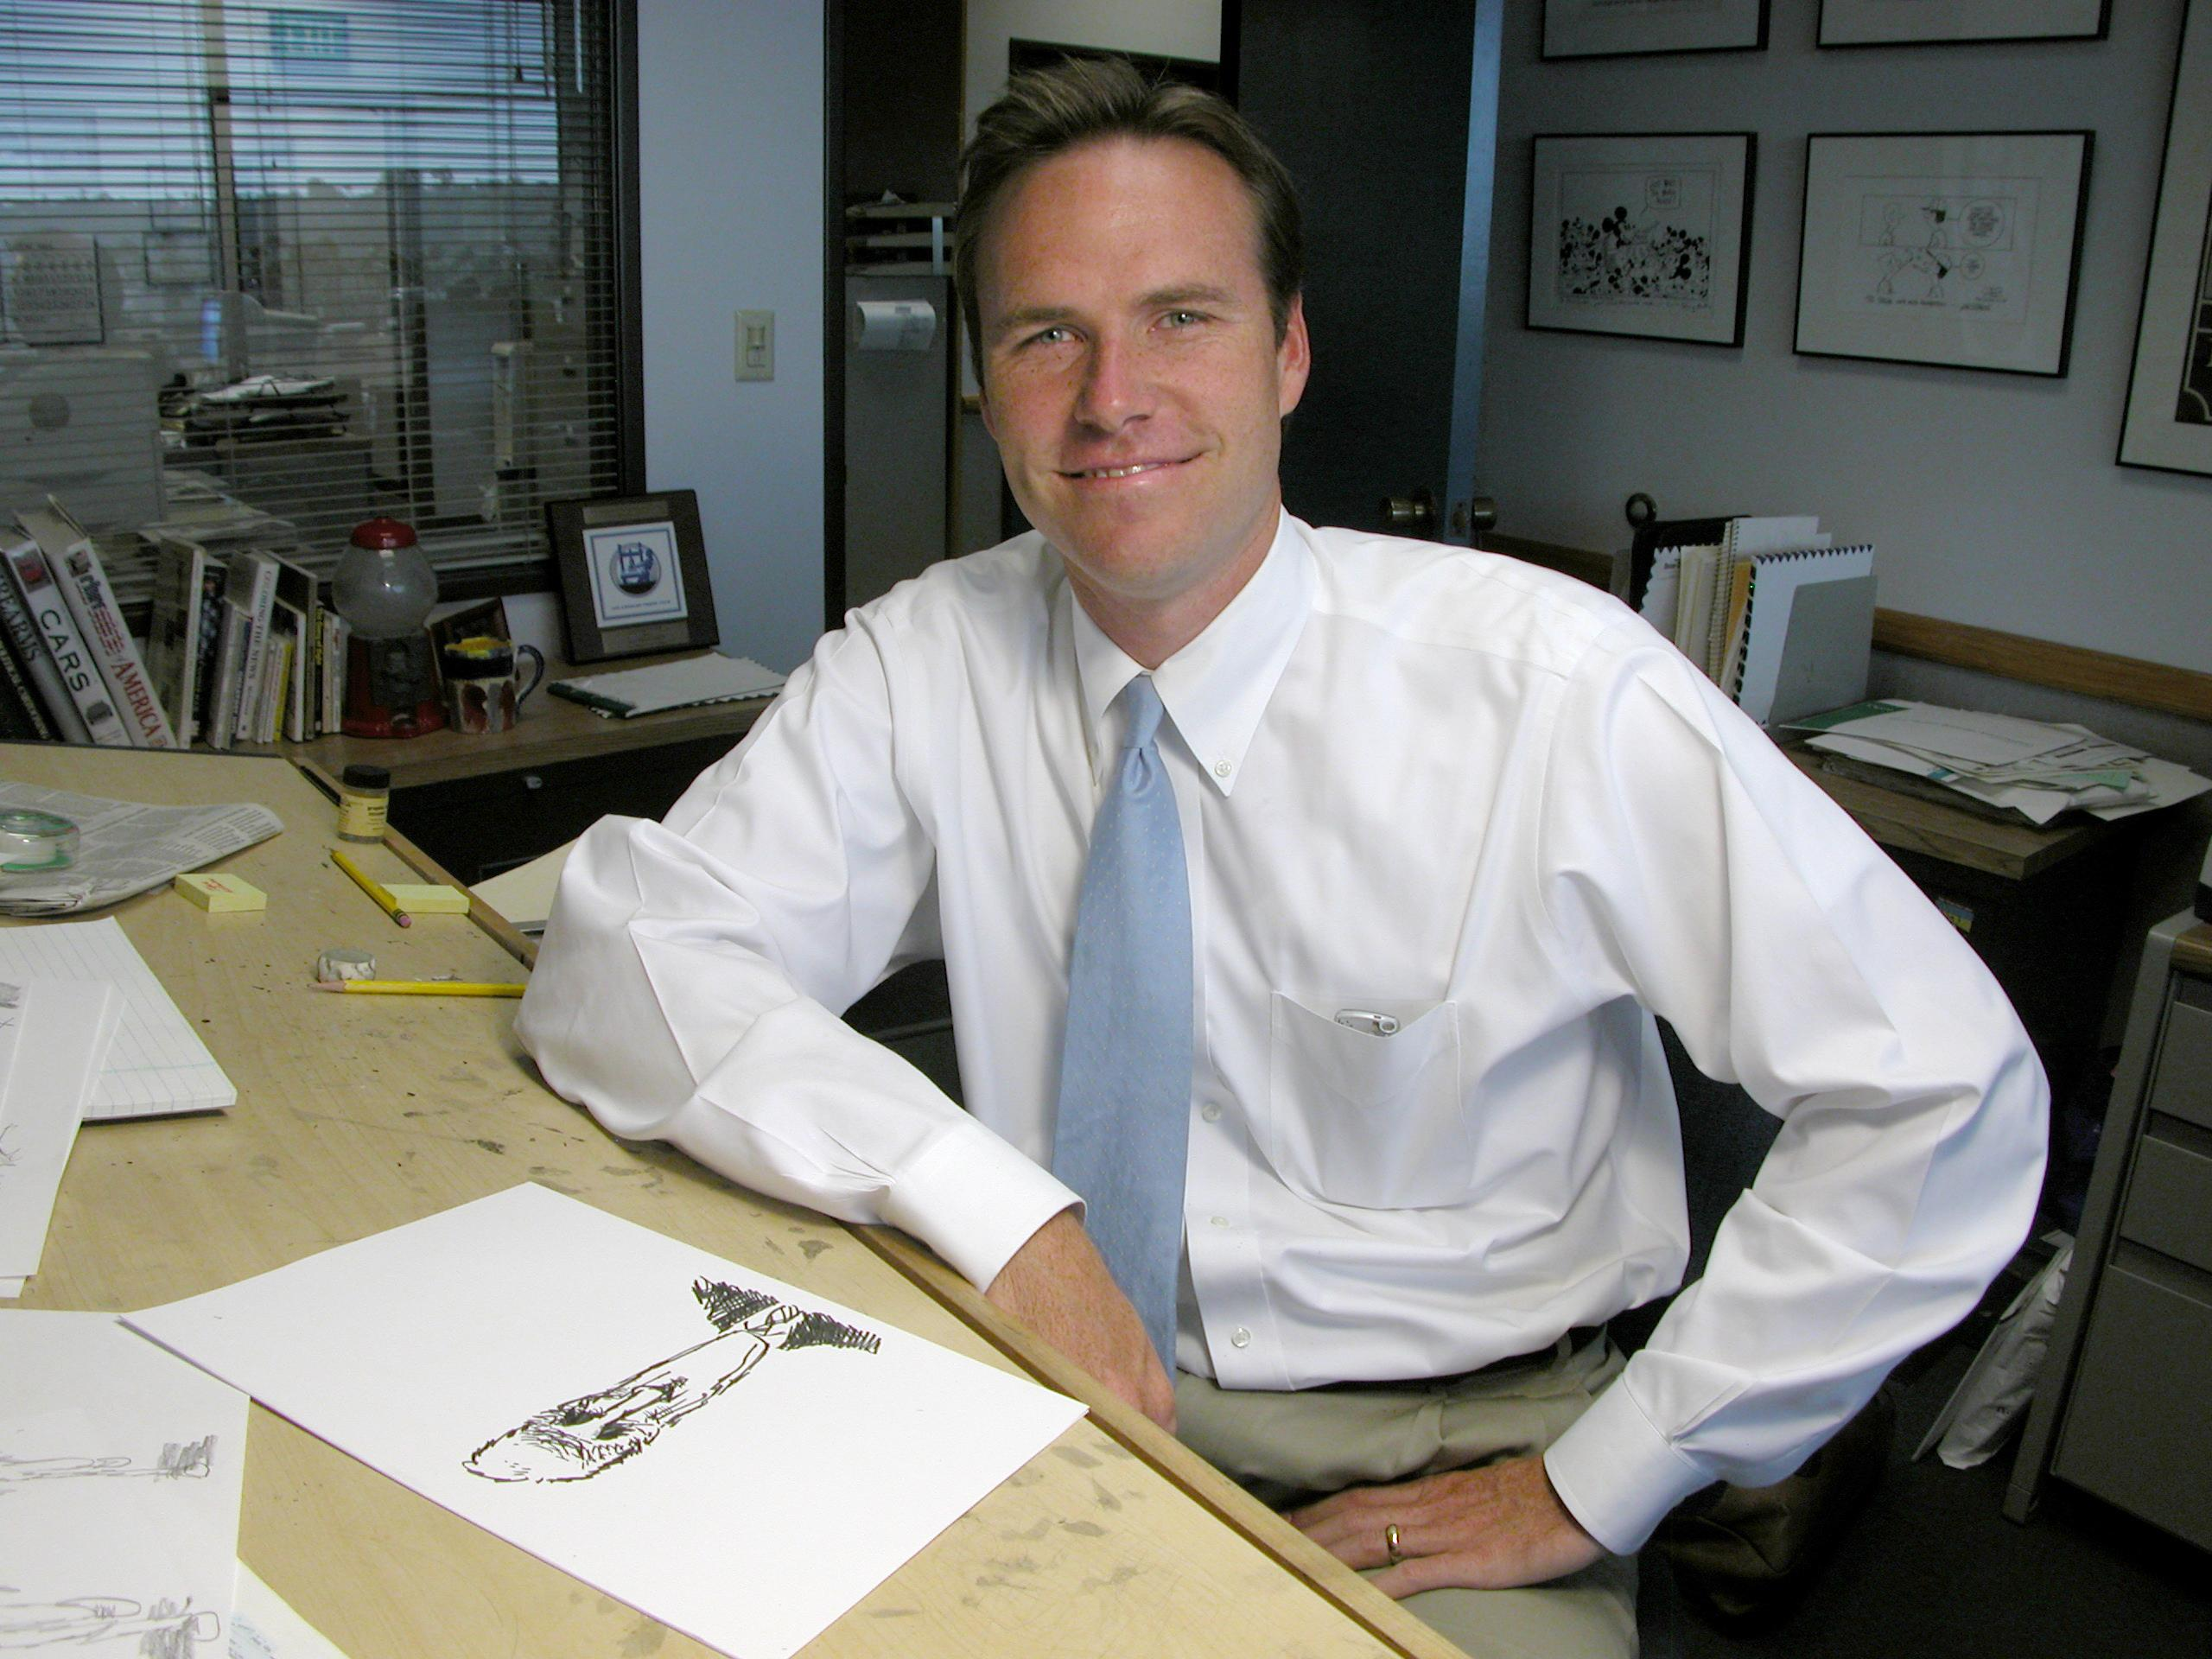 Pulitzer Prize-winning cartoonist Steve Breen